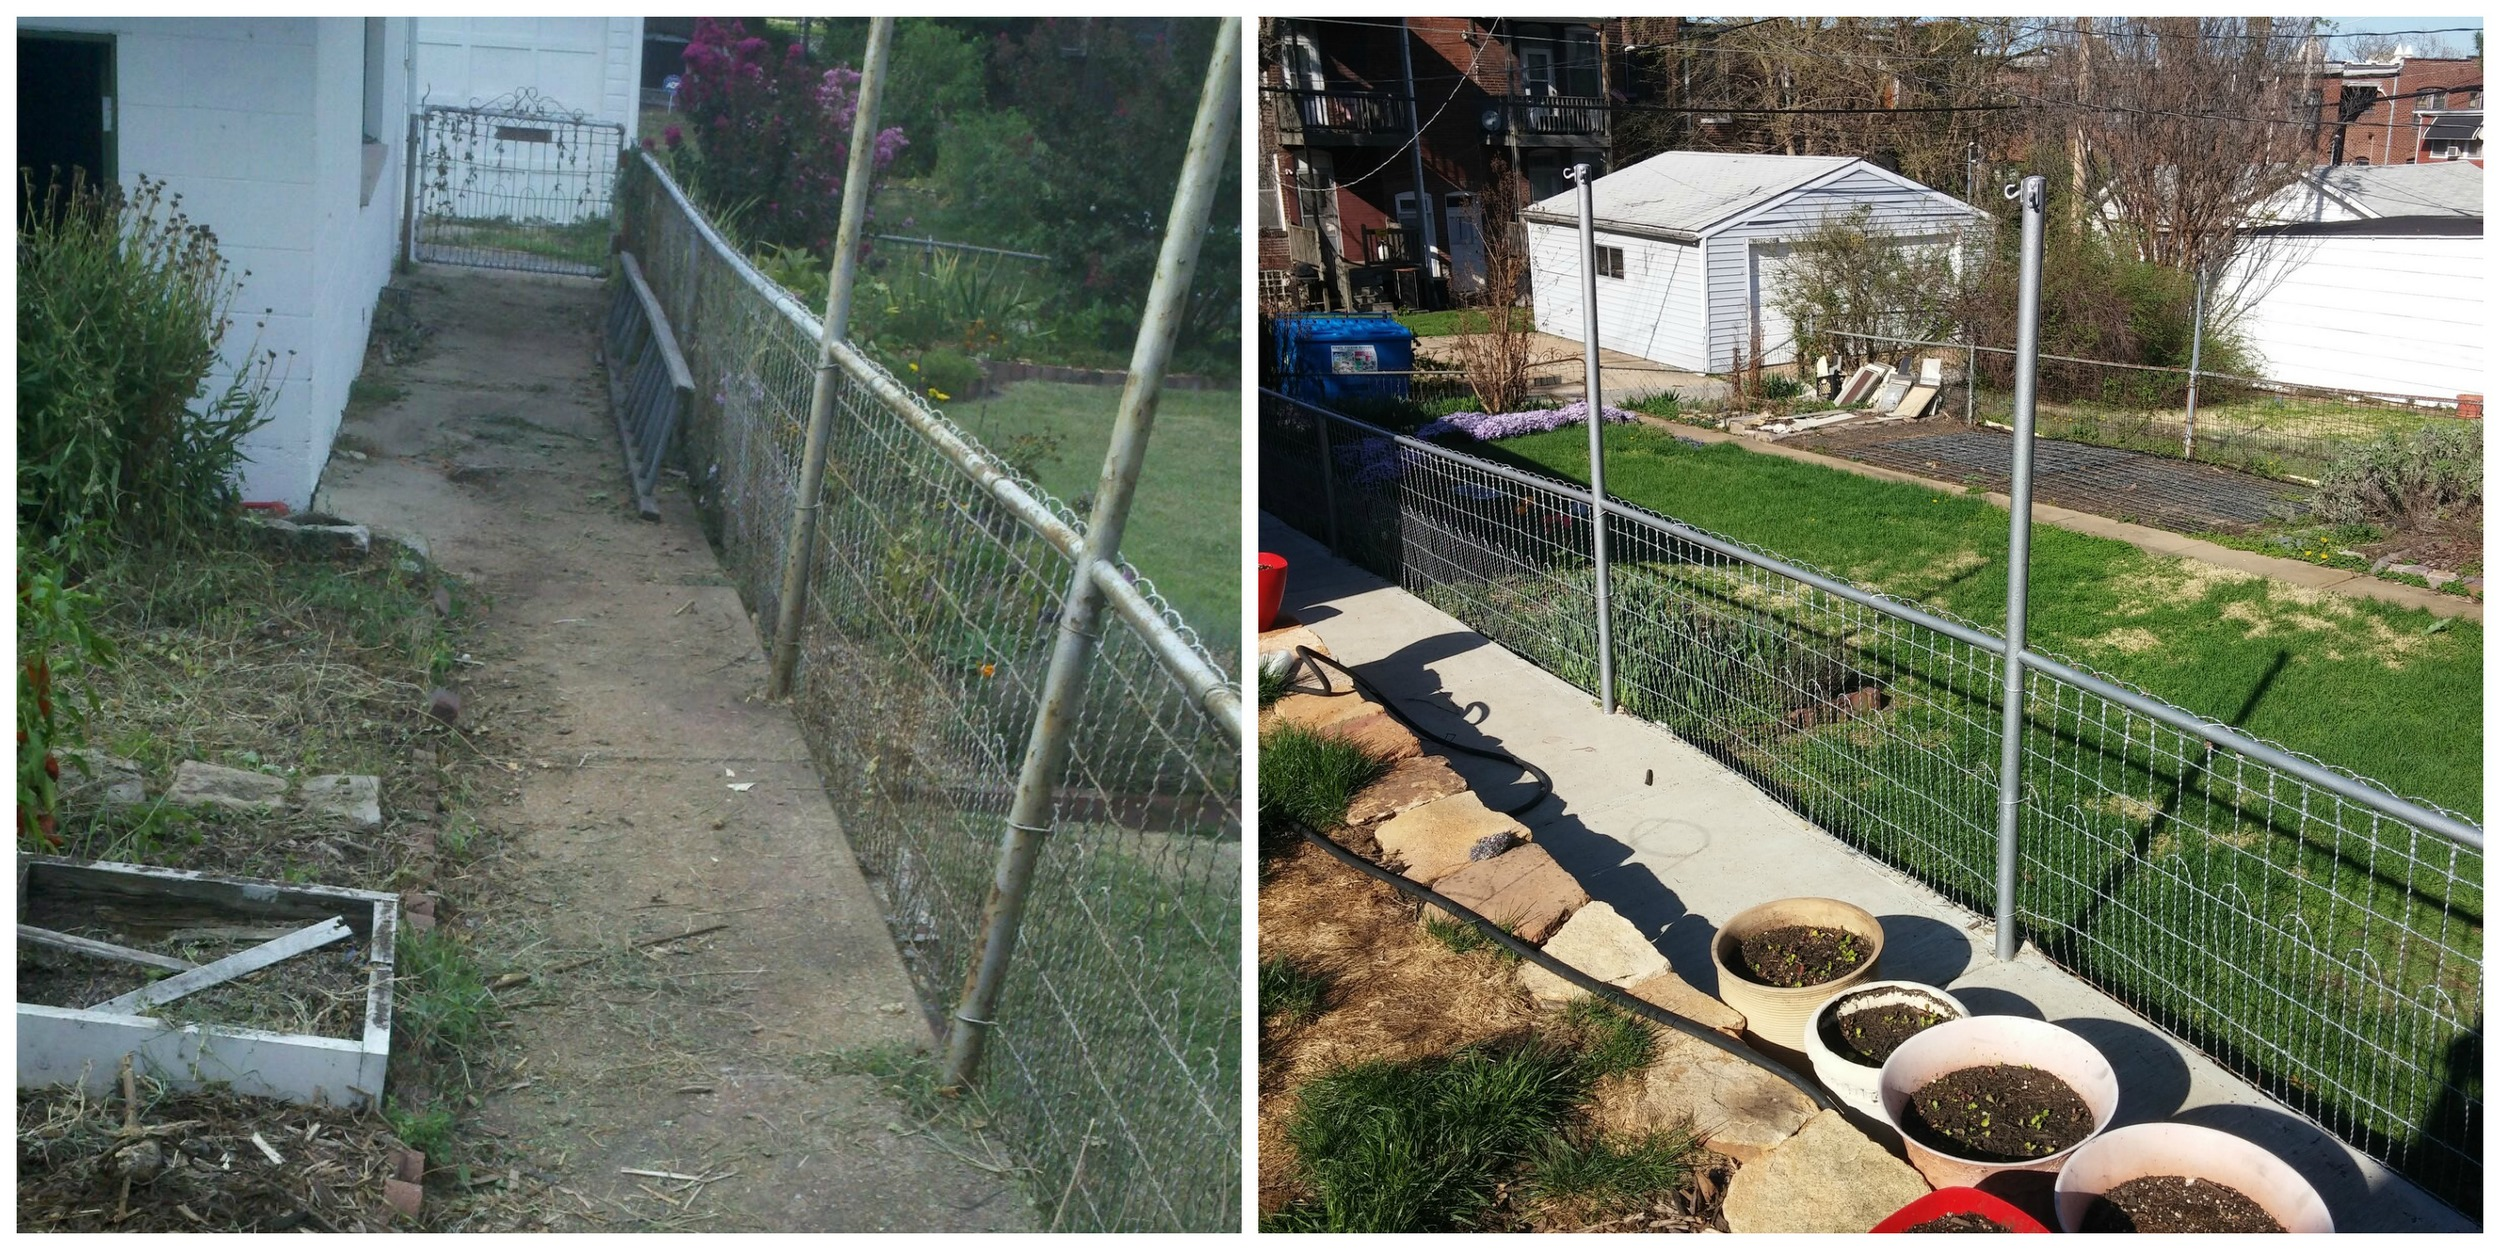 On the left: the fence a couple years ago when we were getting ready to replacethe sidewalk. On the right: the fence today, along with the new sidewalk.